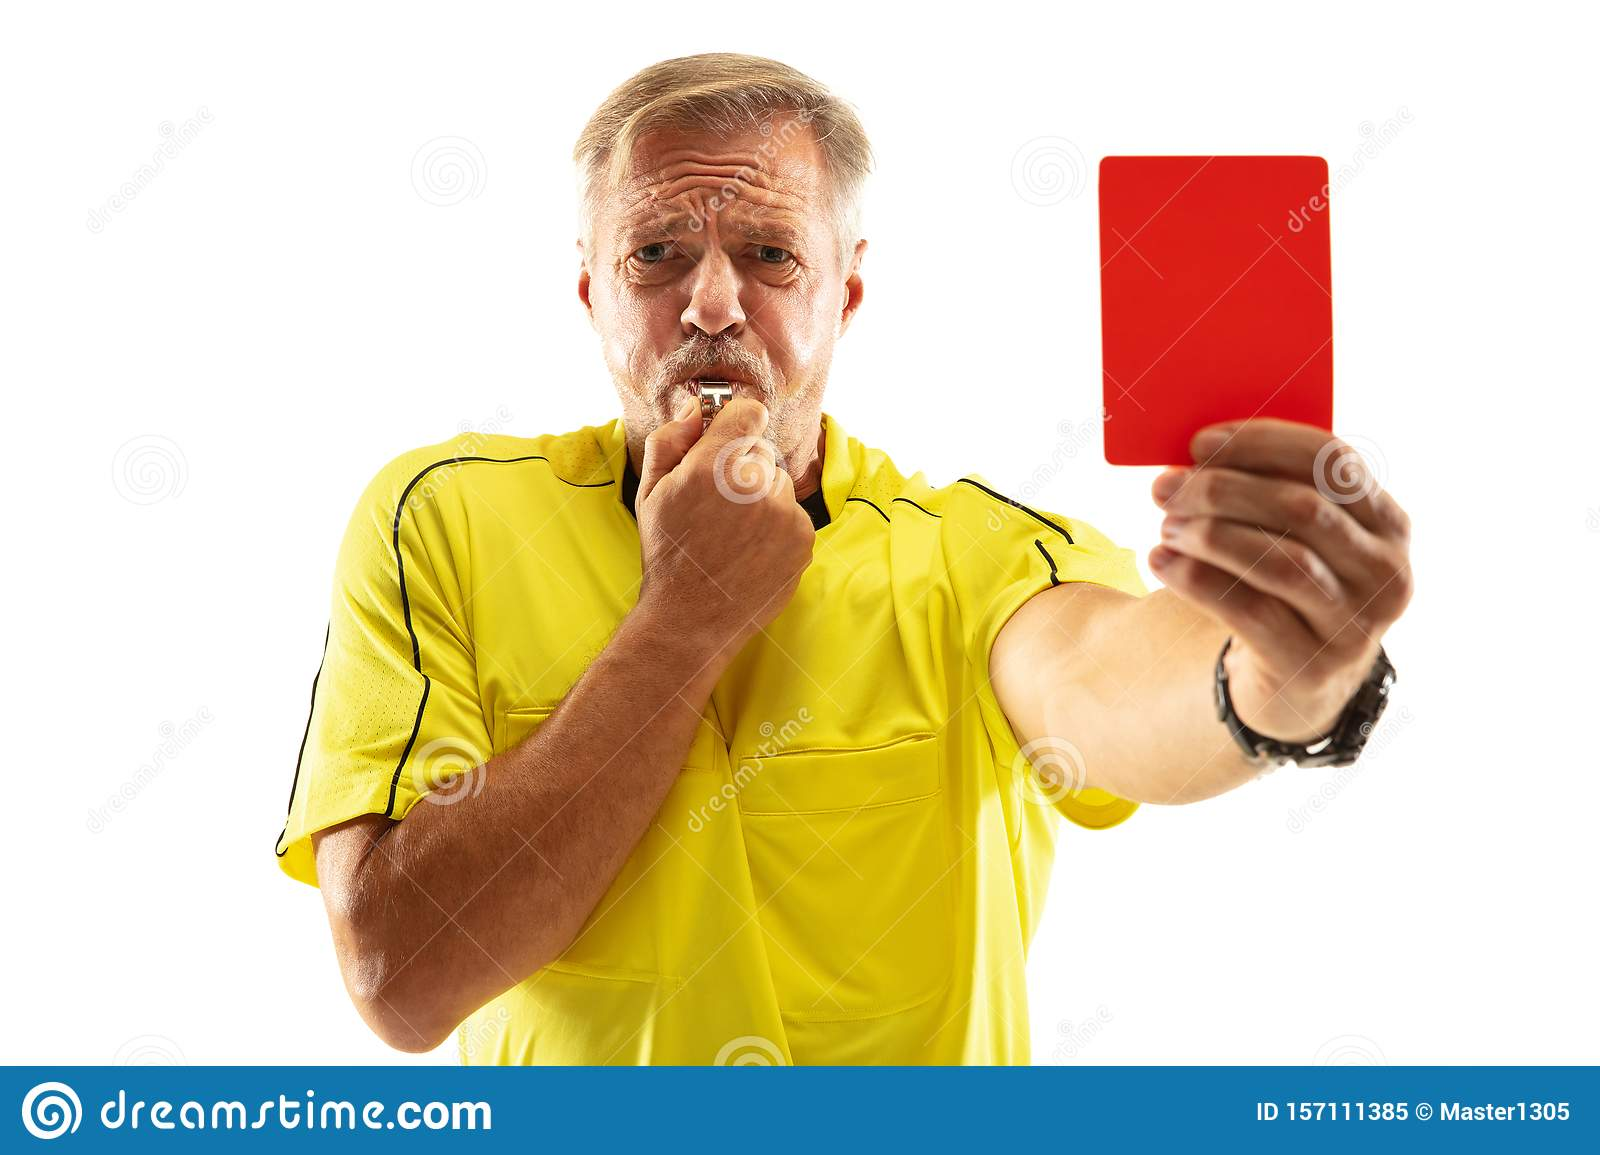 football-referee-showing-red-card-to-displeased-player-isolated-white-background-referee-showing-red-card-gesturing-157111385.jpg